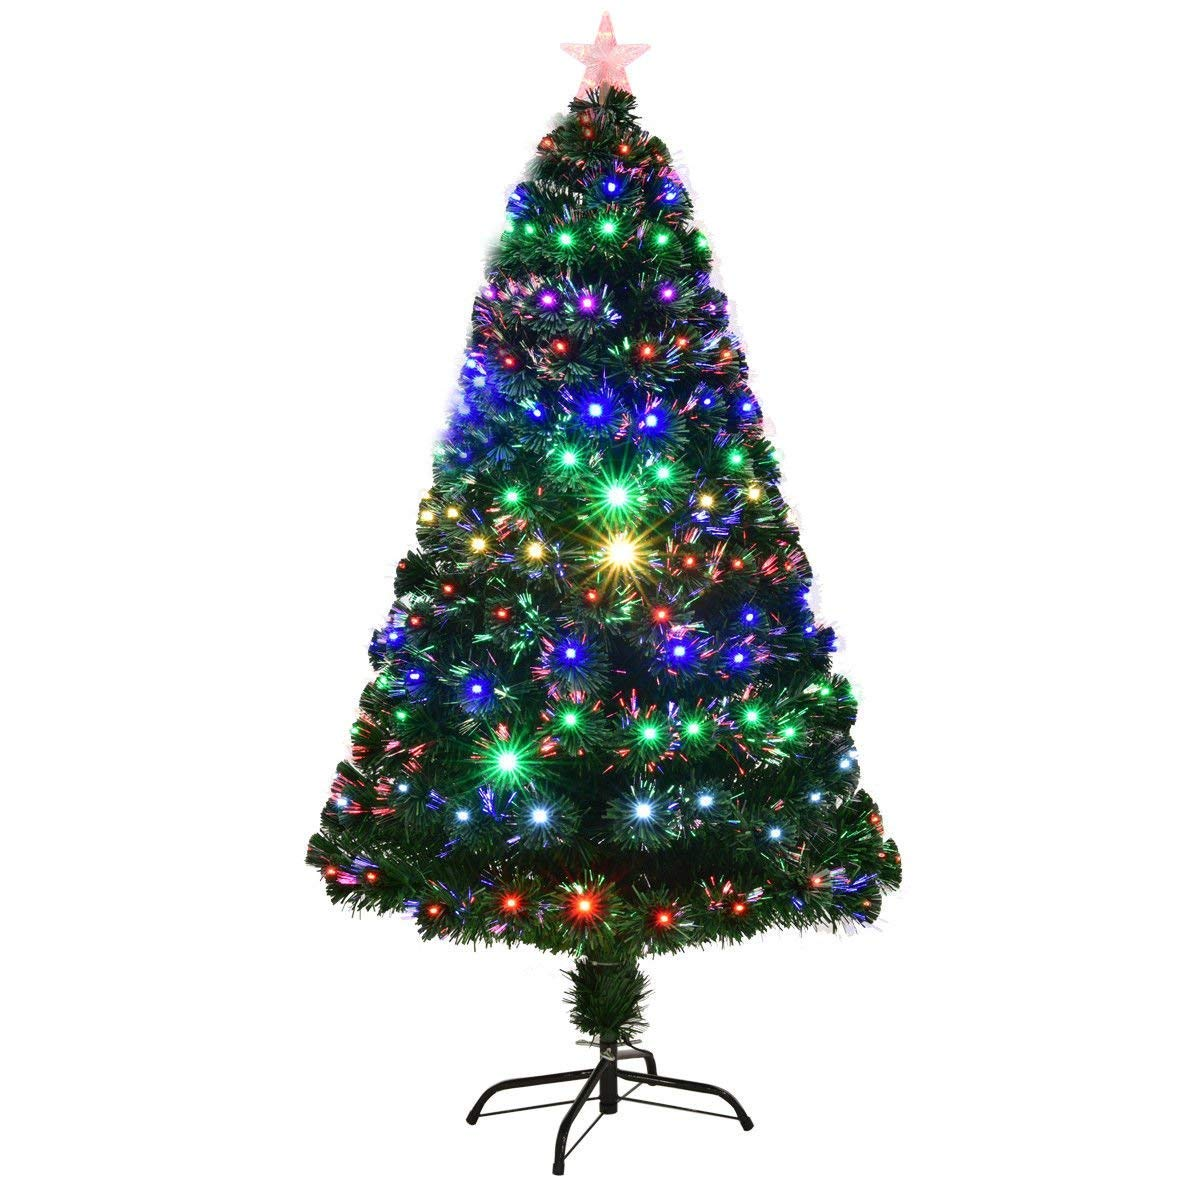 Goplus 5FT Artificial Christmas Tree Pre-Lit Optical Fiber Tree 8 Flash Modes W/UL Certified Multicolored LED Lights & Metal Stand Superbuy